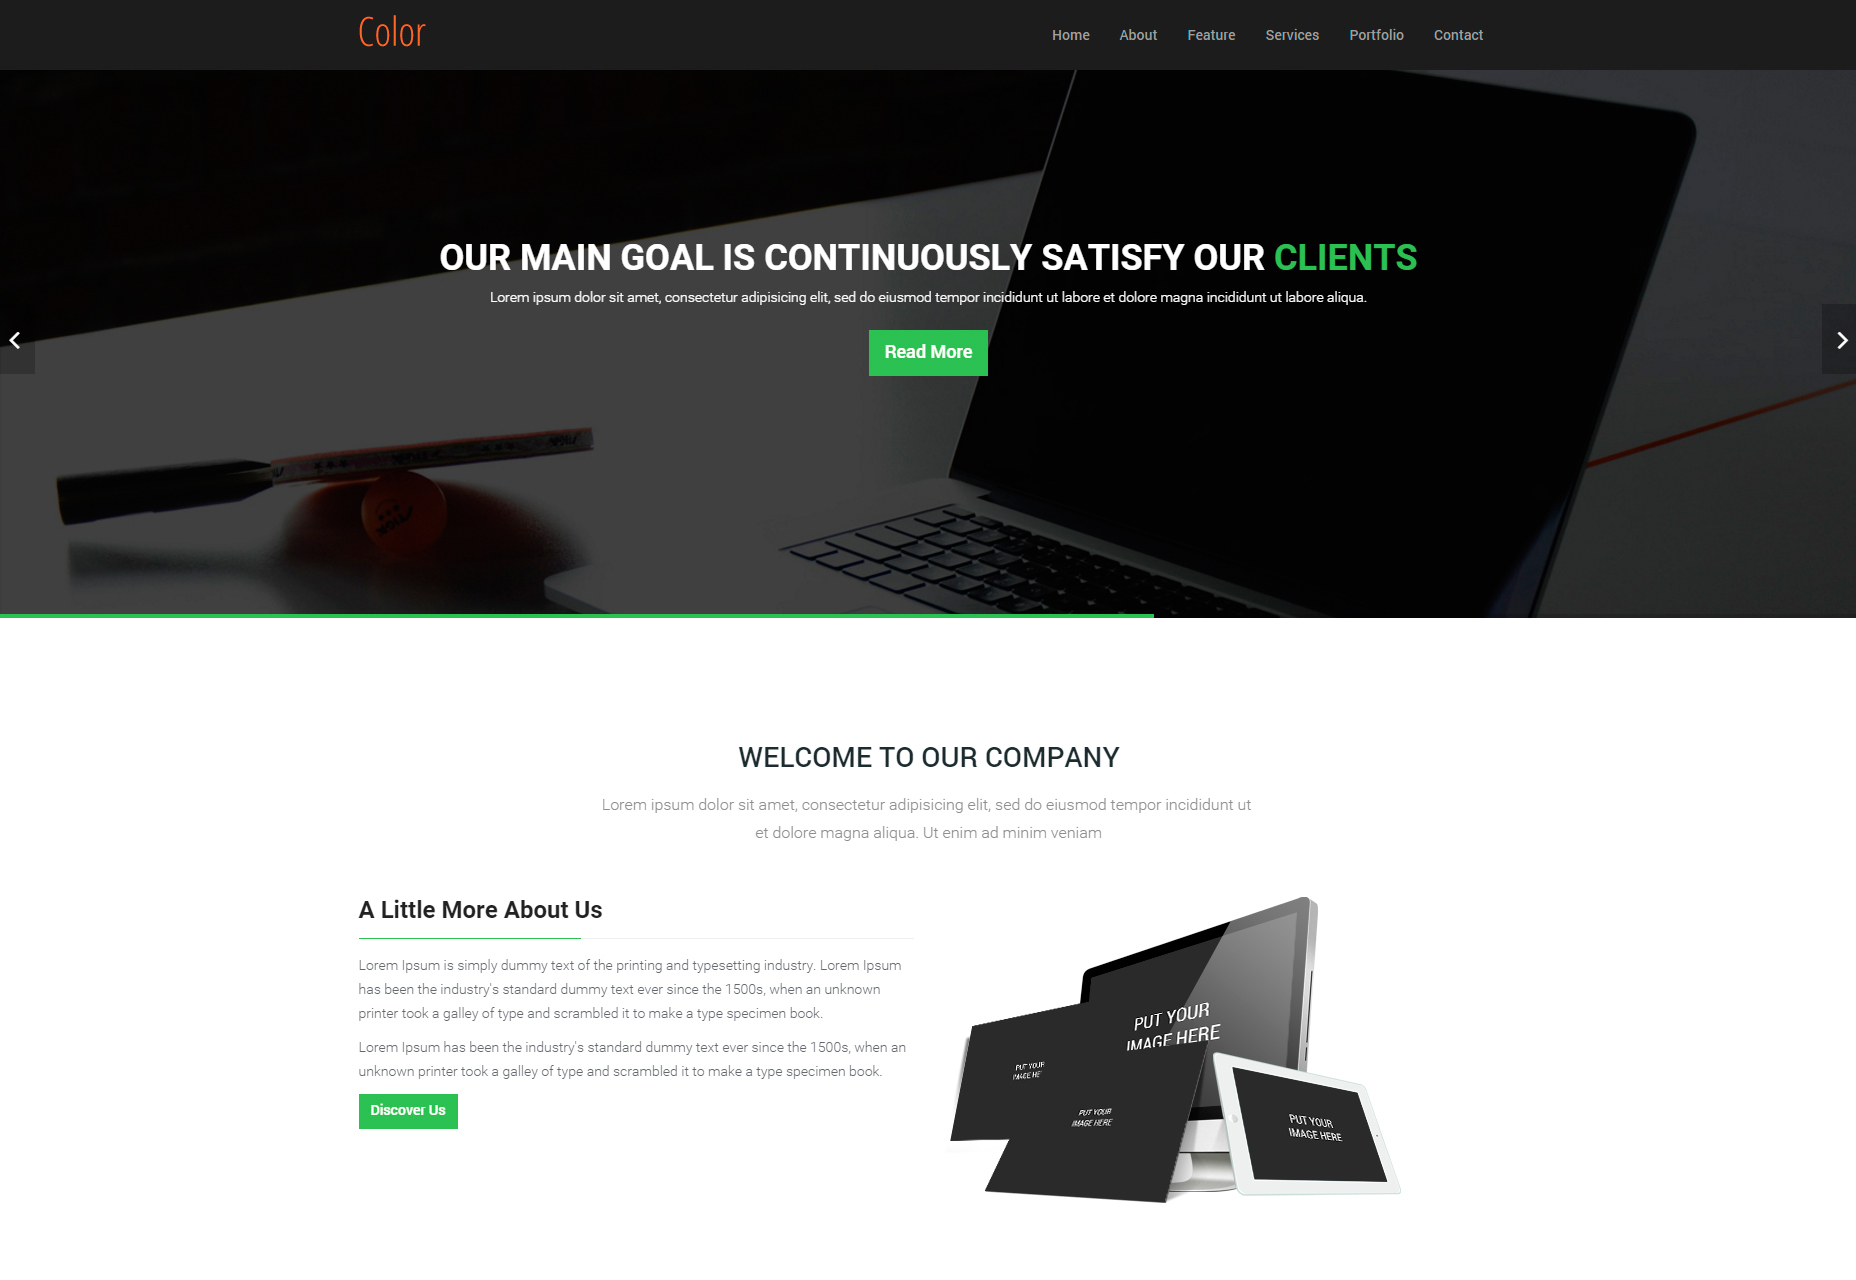 Color: HTML5 One Page Template